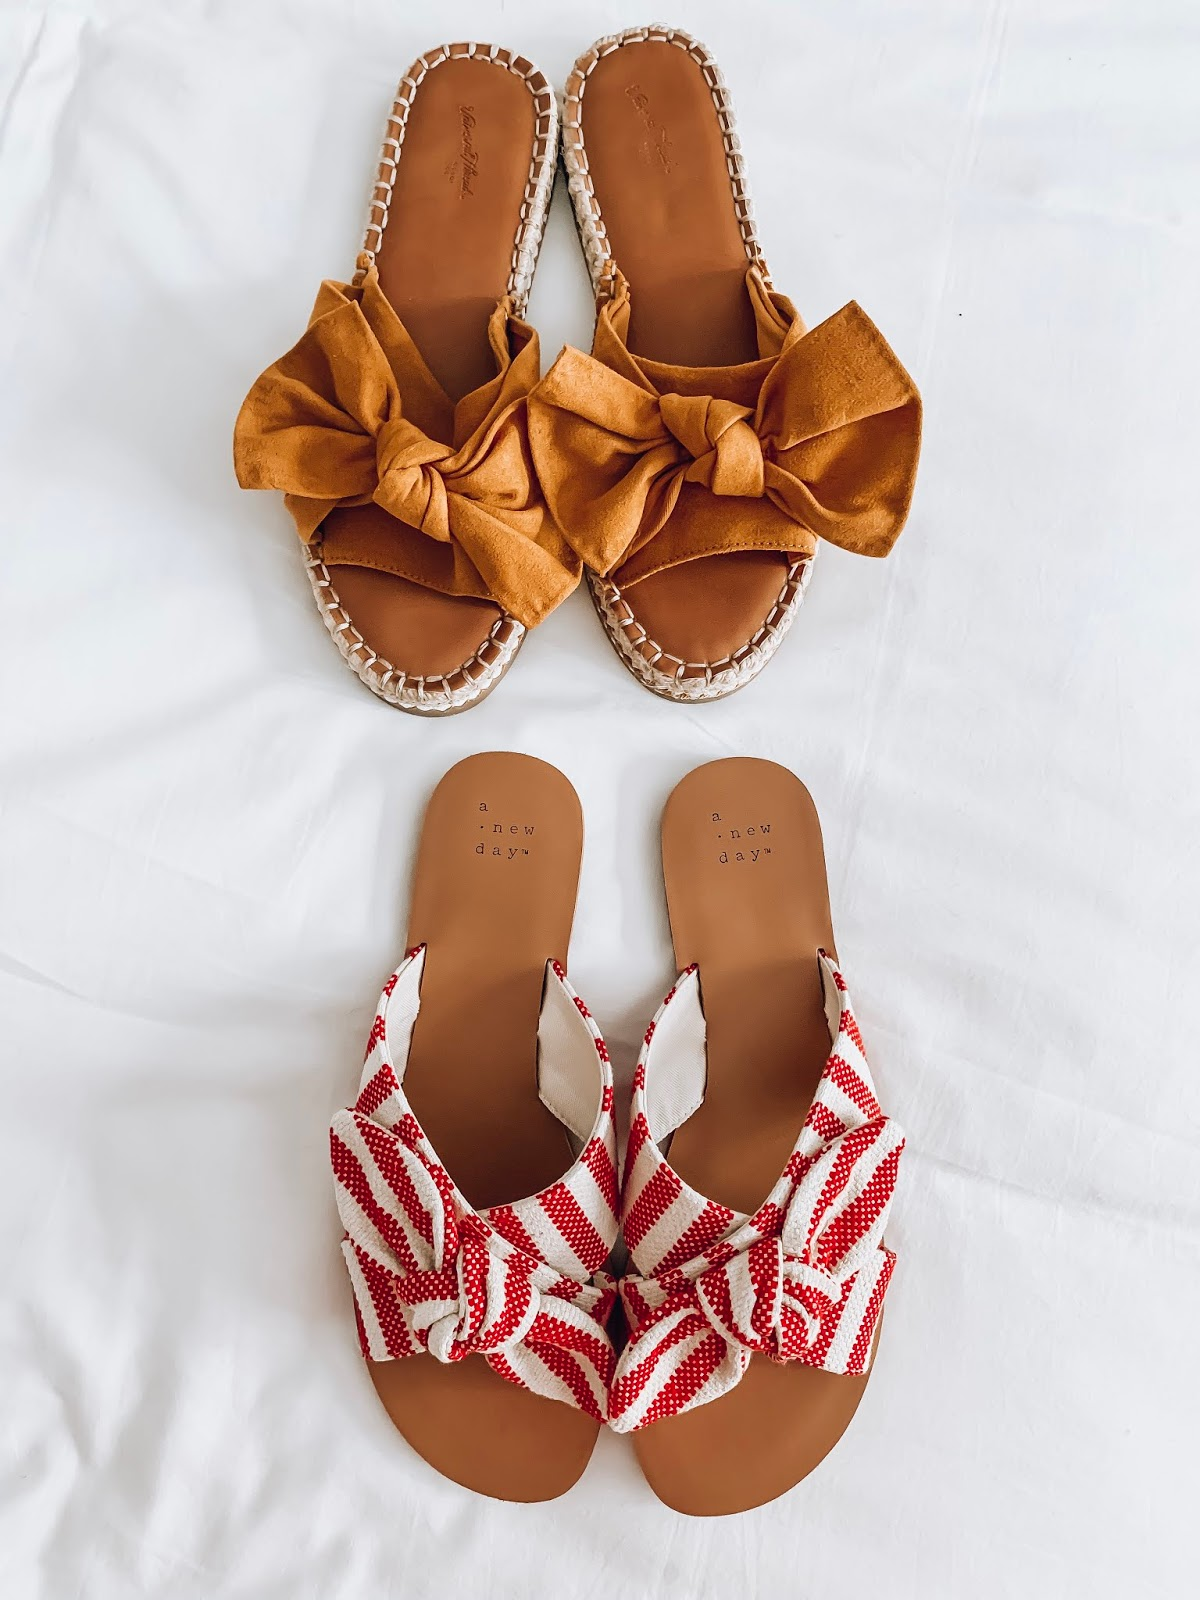 Recent Target Finds for Summer, Bow Sandals - Something Delightful Blog